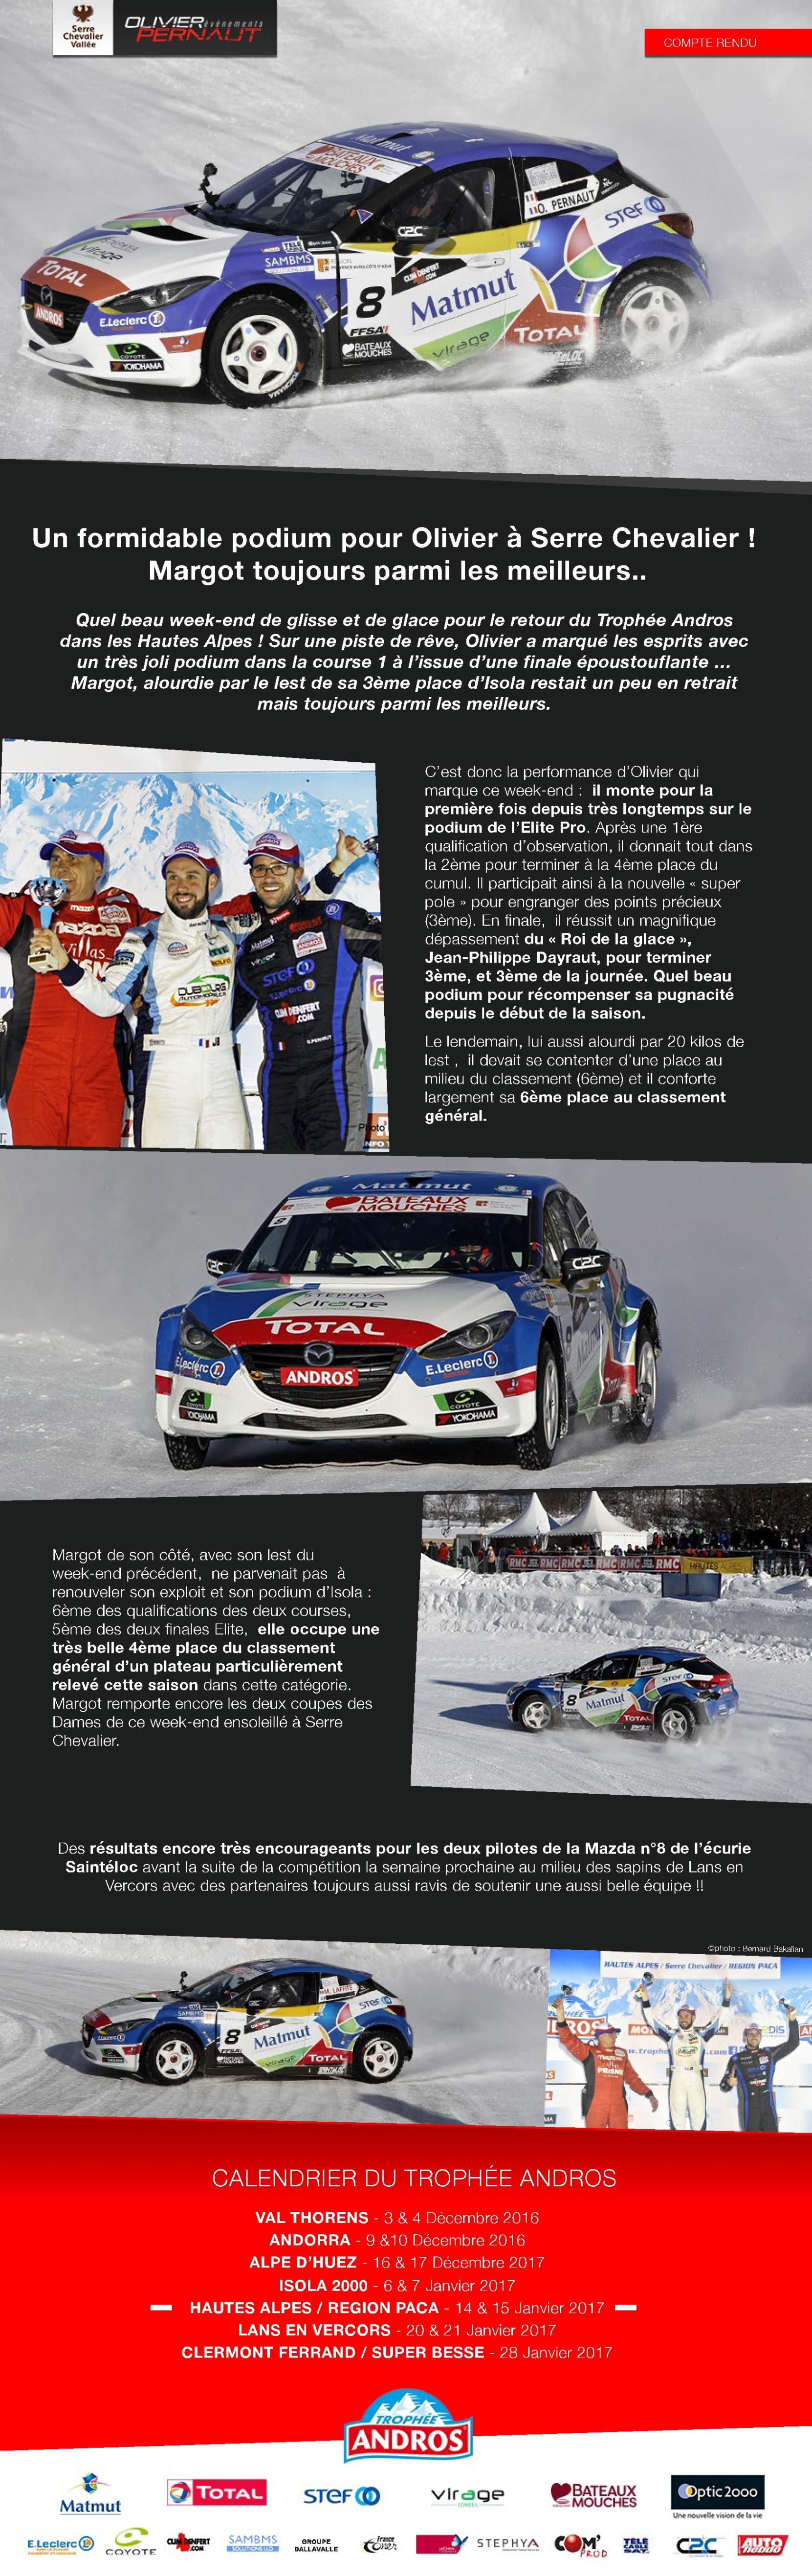 Trophee-Andros-2017_Serre-Chevalier_Pernaut_Laffite-page-0